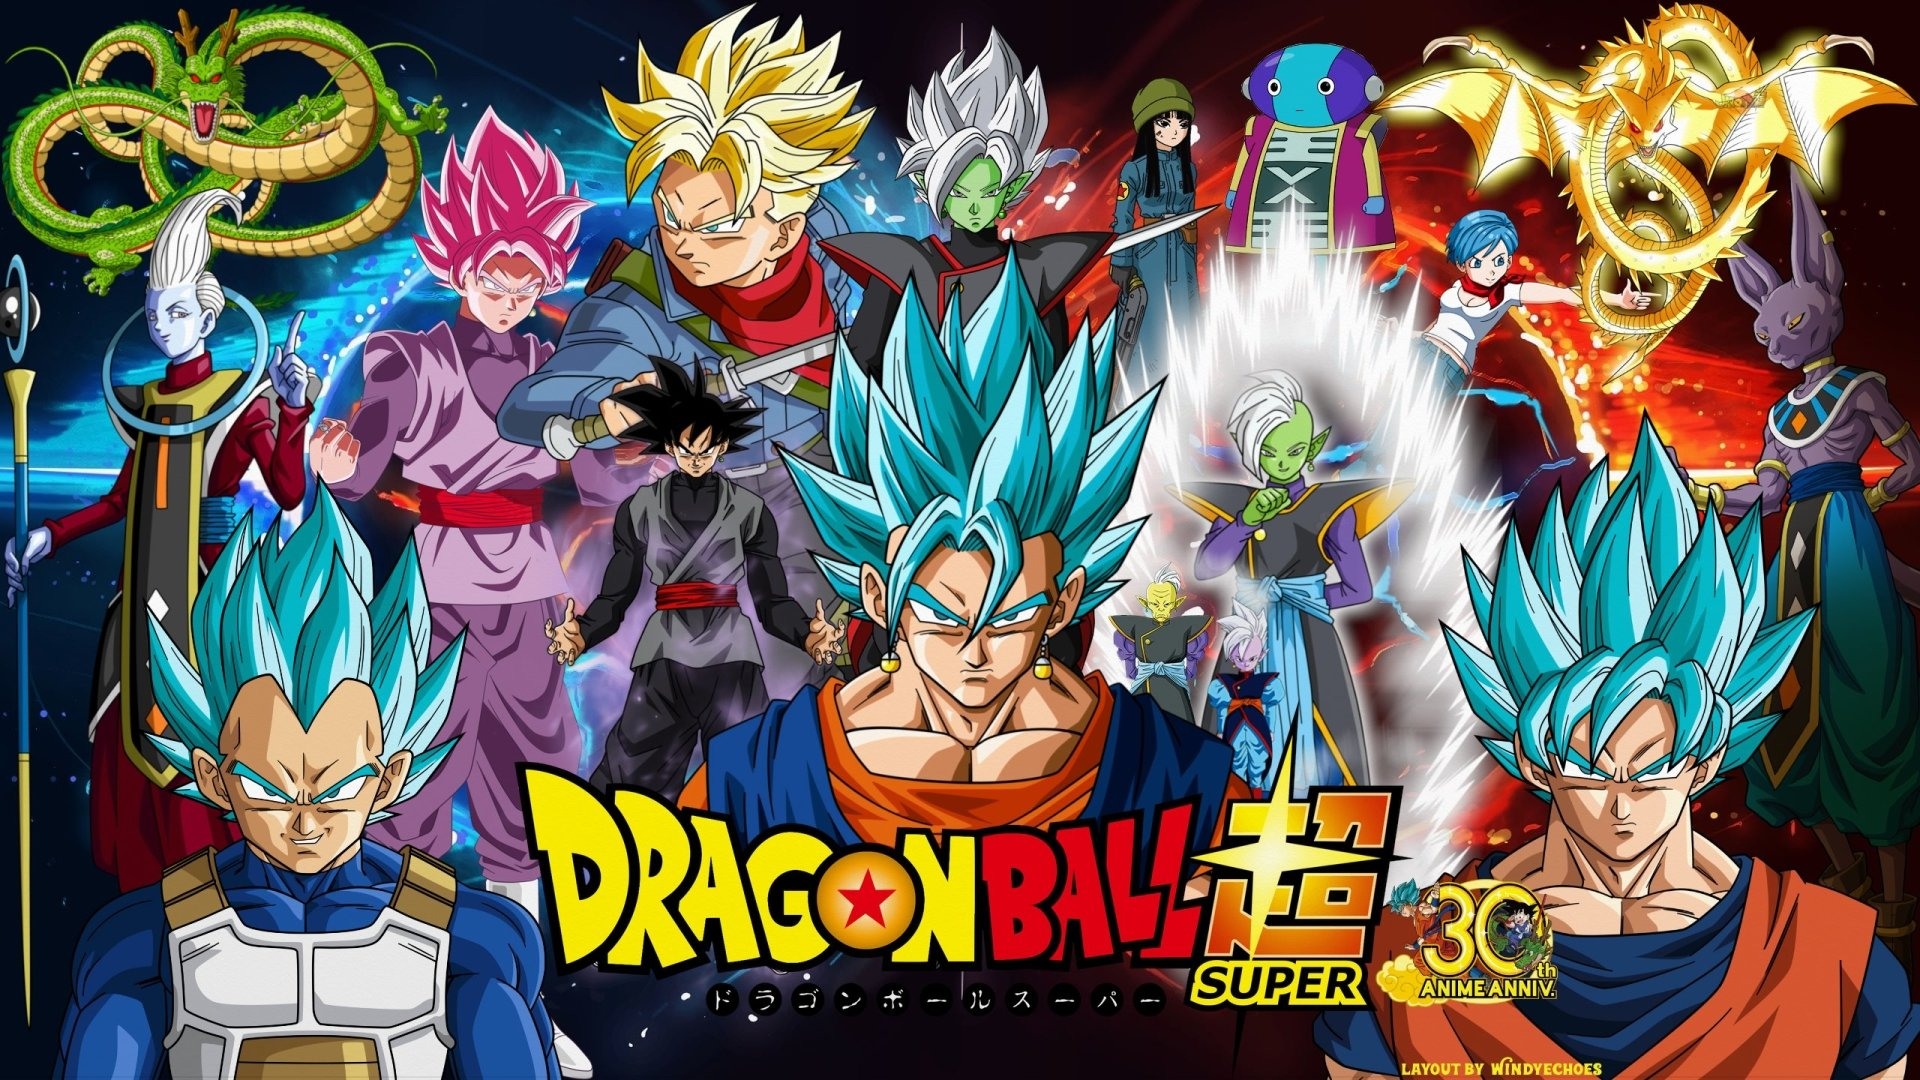 Anime - Dragon Ball Super  Goku Trunks (Dragon Ball) Vegeta (Dragon Ball) Bulma (Dragon Ball) Vegito (Dragon Ball) Beerus (Dragon Ball) Whis (Dragon Ball) Shenron (Dragon Ball) Supreme Kai (Dragon Ball) Mai (Dragon Ball) SSGSS Goku SSGSS Vegeta Black Goku Black (Dragon Ball) Zamasu (Dragon Ball) SSR Black SSGSS Vegito Zeno (Dragon Ball) Zarama (Dragon Ball) Gowasu (Dragon Ball) Wallpaper